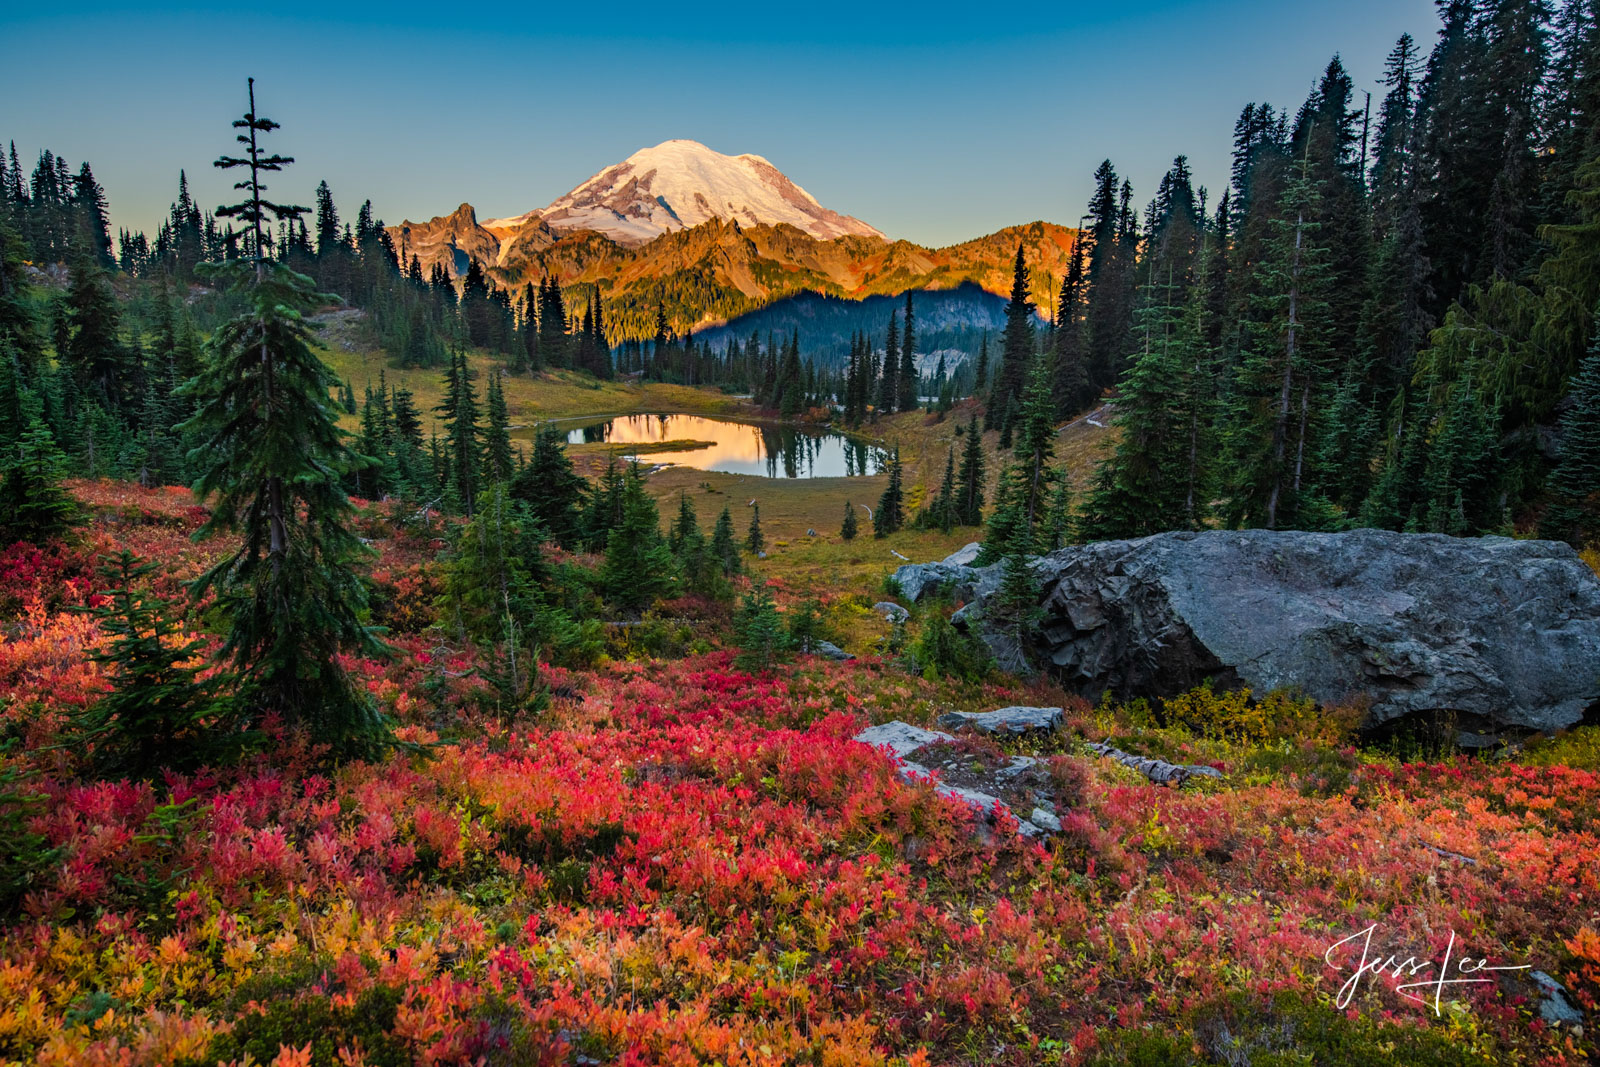 Fine Art Landscape Photography A Limited Edition of 200 prints of Mt Rainier National Park Washington, In Beautiful Fall Color...